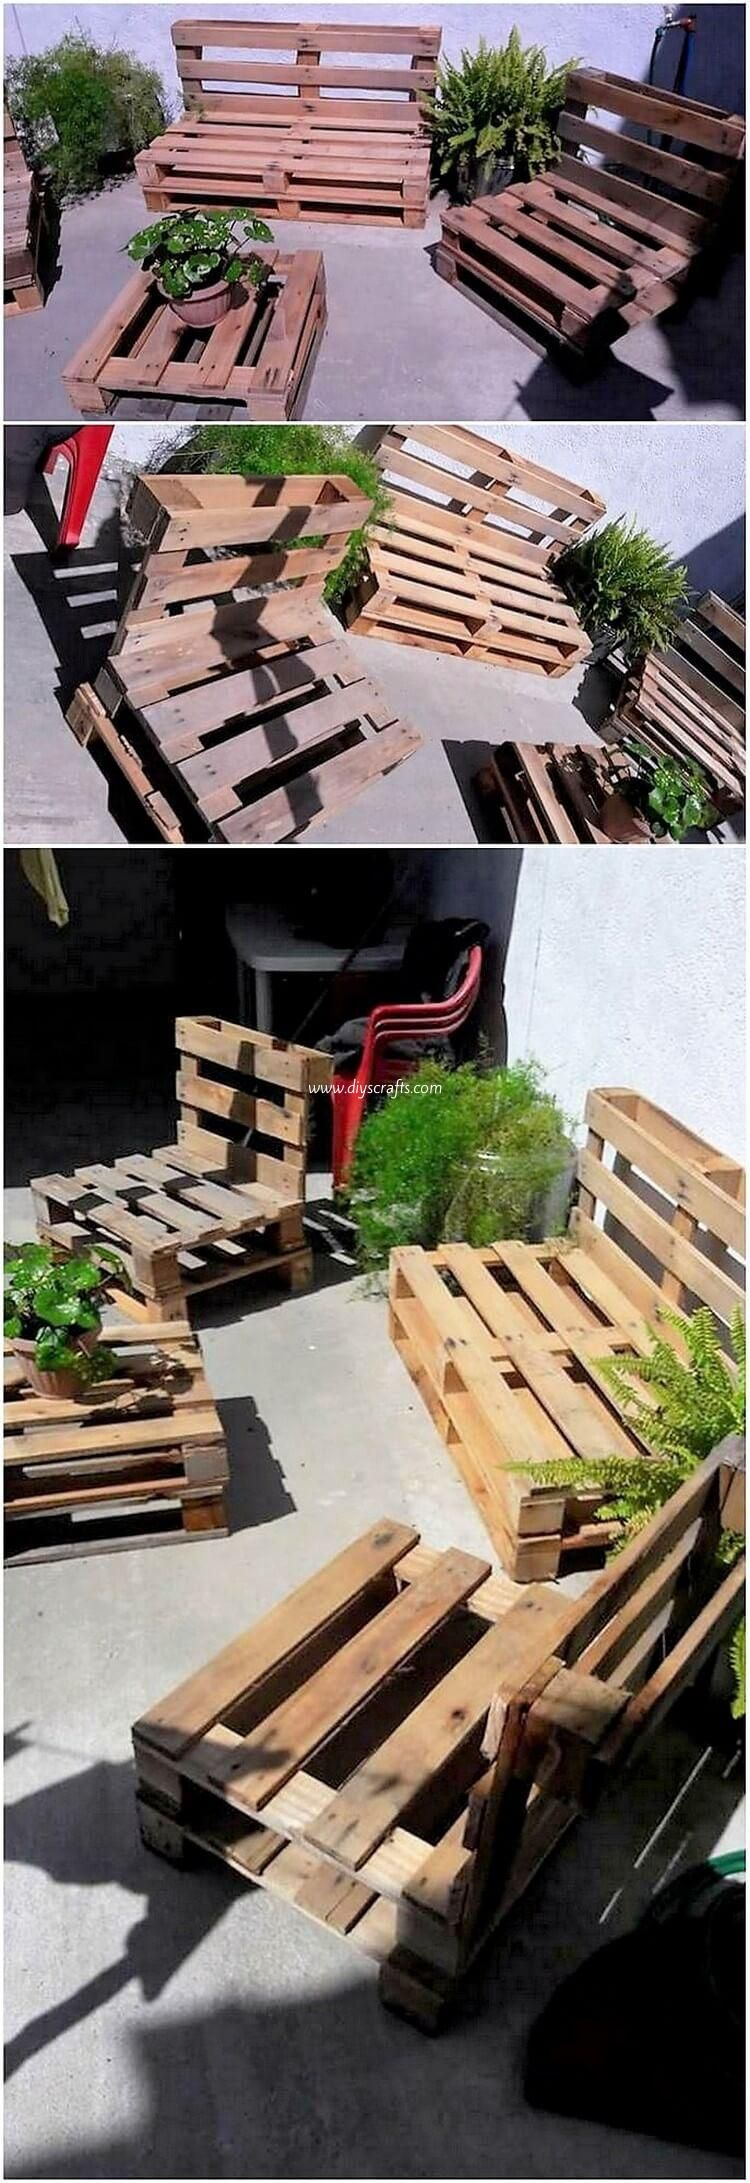 25 garden seating pallets